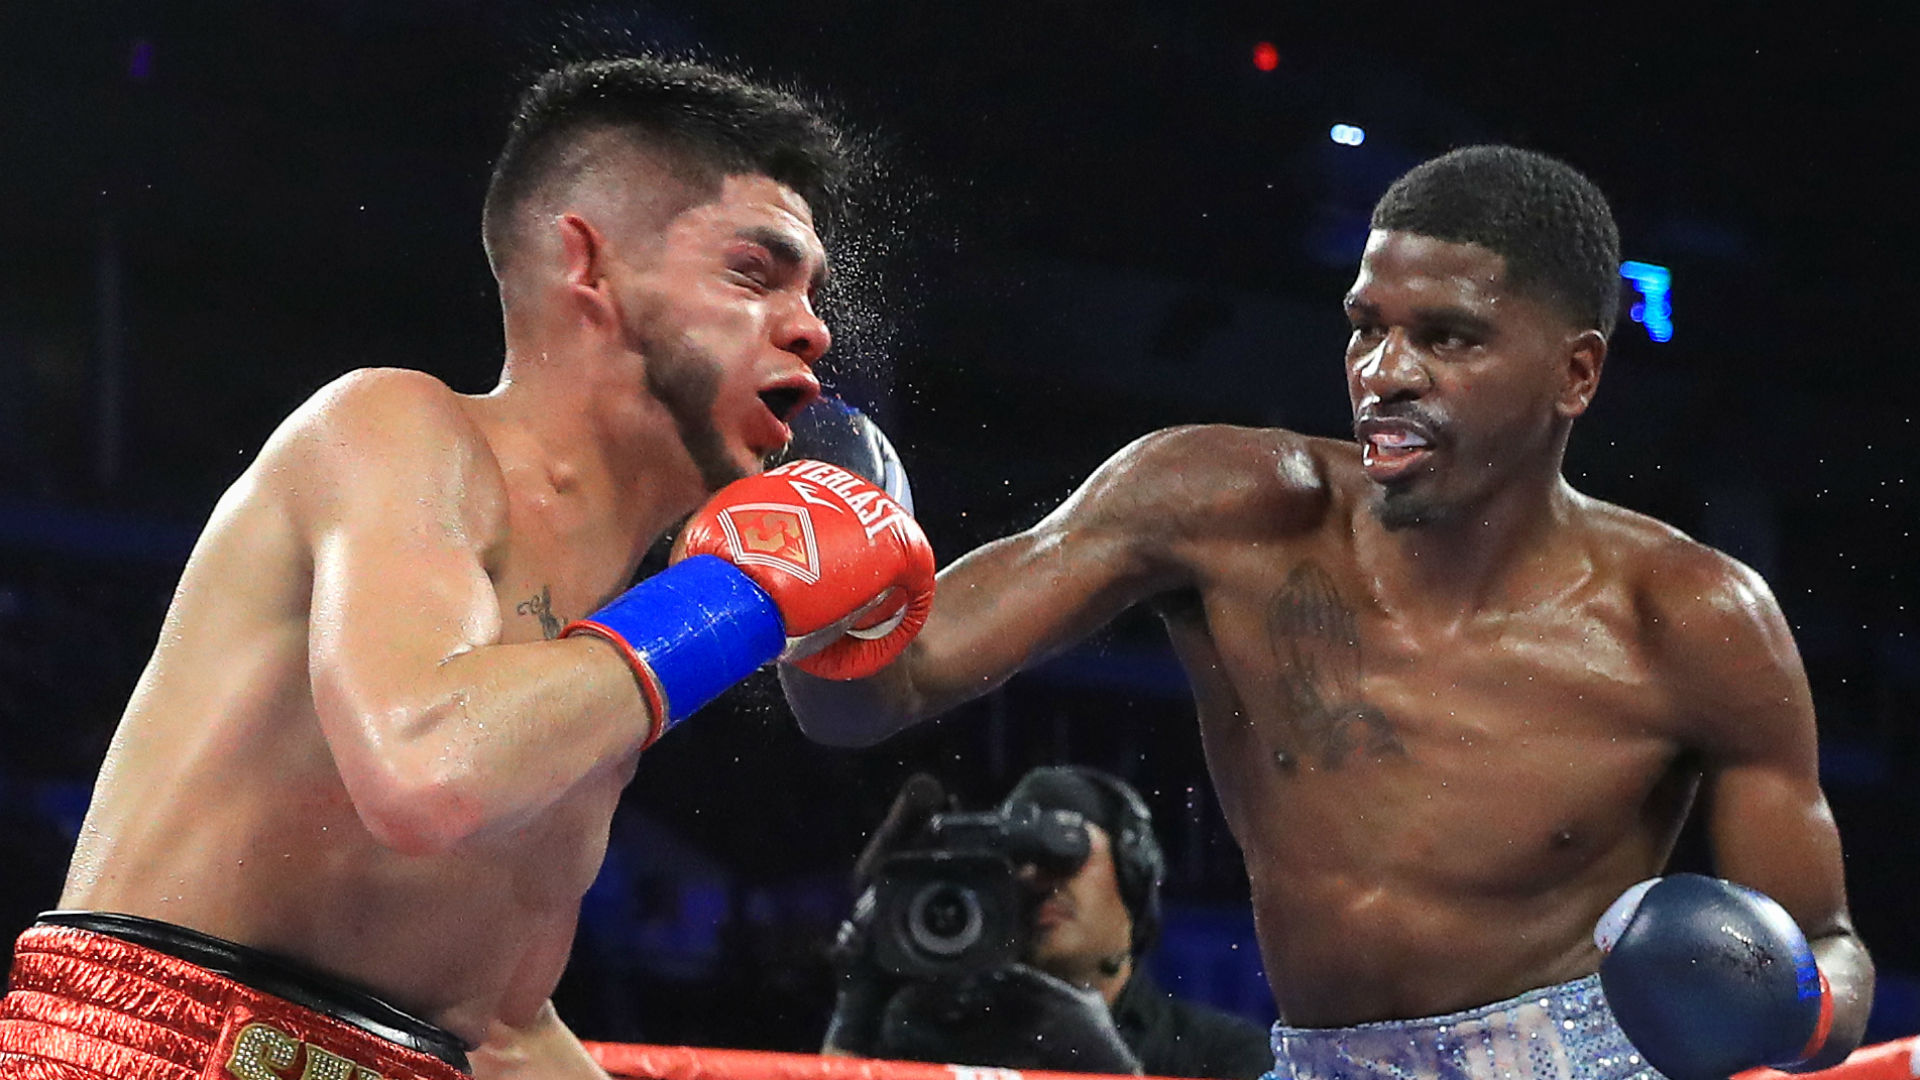 Maurice Hooker vs Jose Ramirez : Schedule, preview and Streaming options